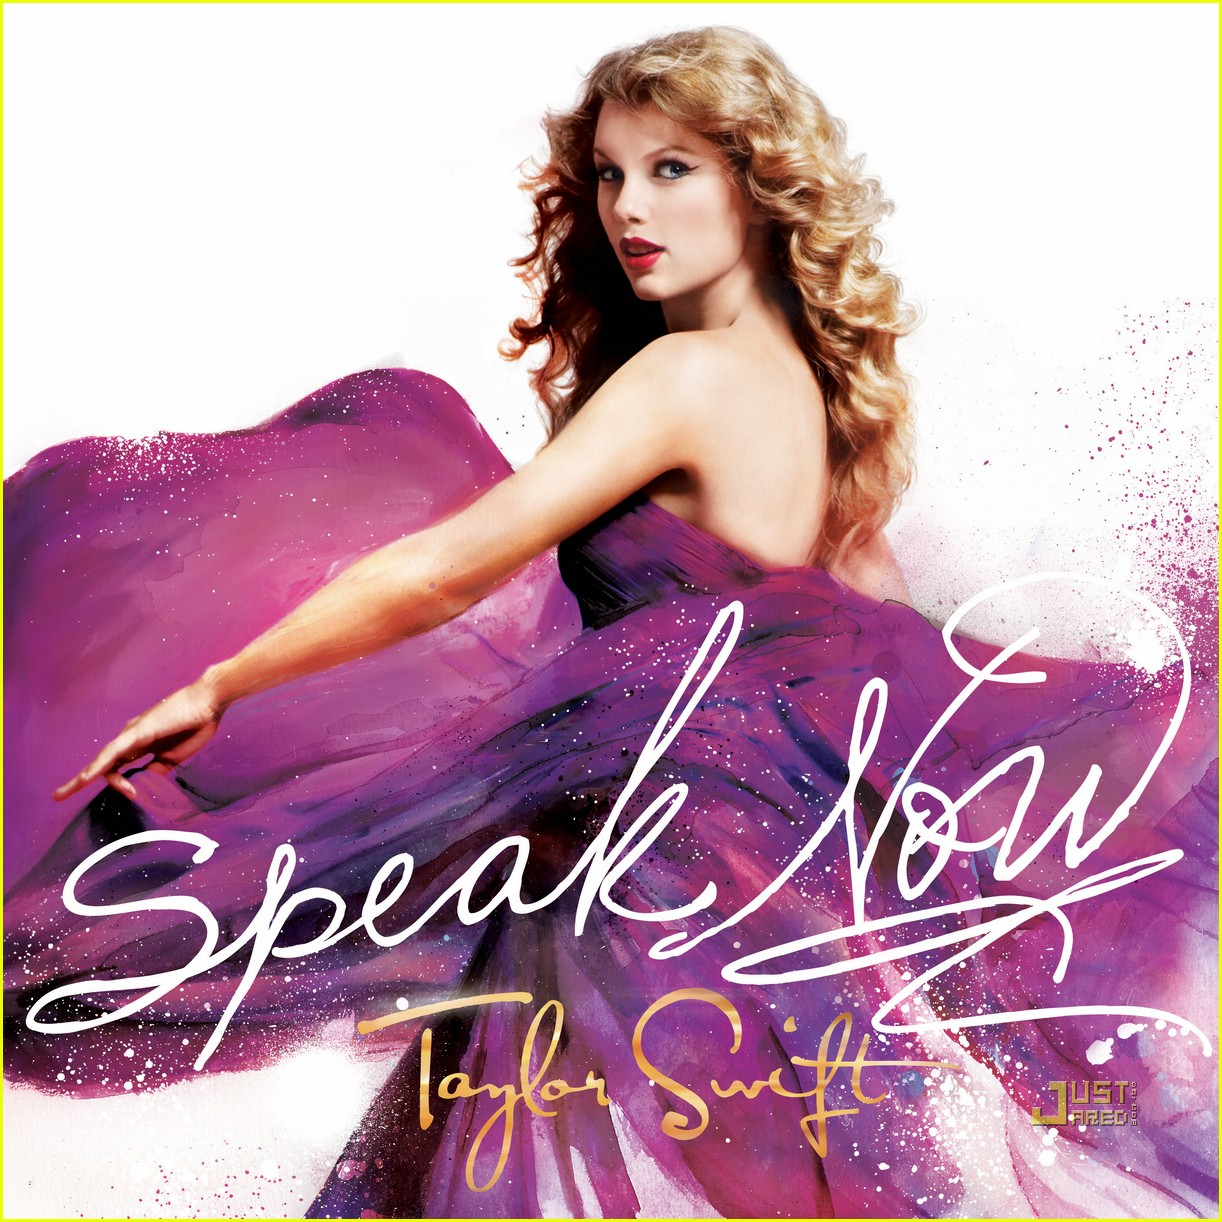 http://3.bp.blogspot.com/_UVjf6kN2NrE/TJtkvXdsASI/AAAAAAAAAHc/43eMq3ZbeU4/s1600/taylor-swift-speak-now-album-cover-02.jpg